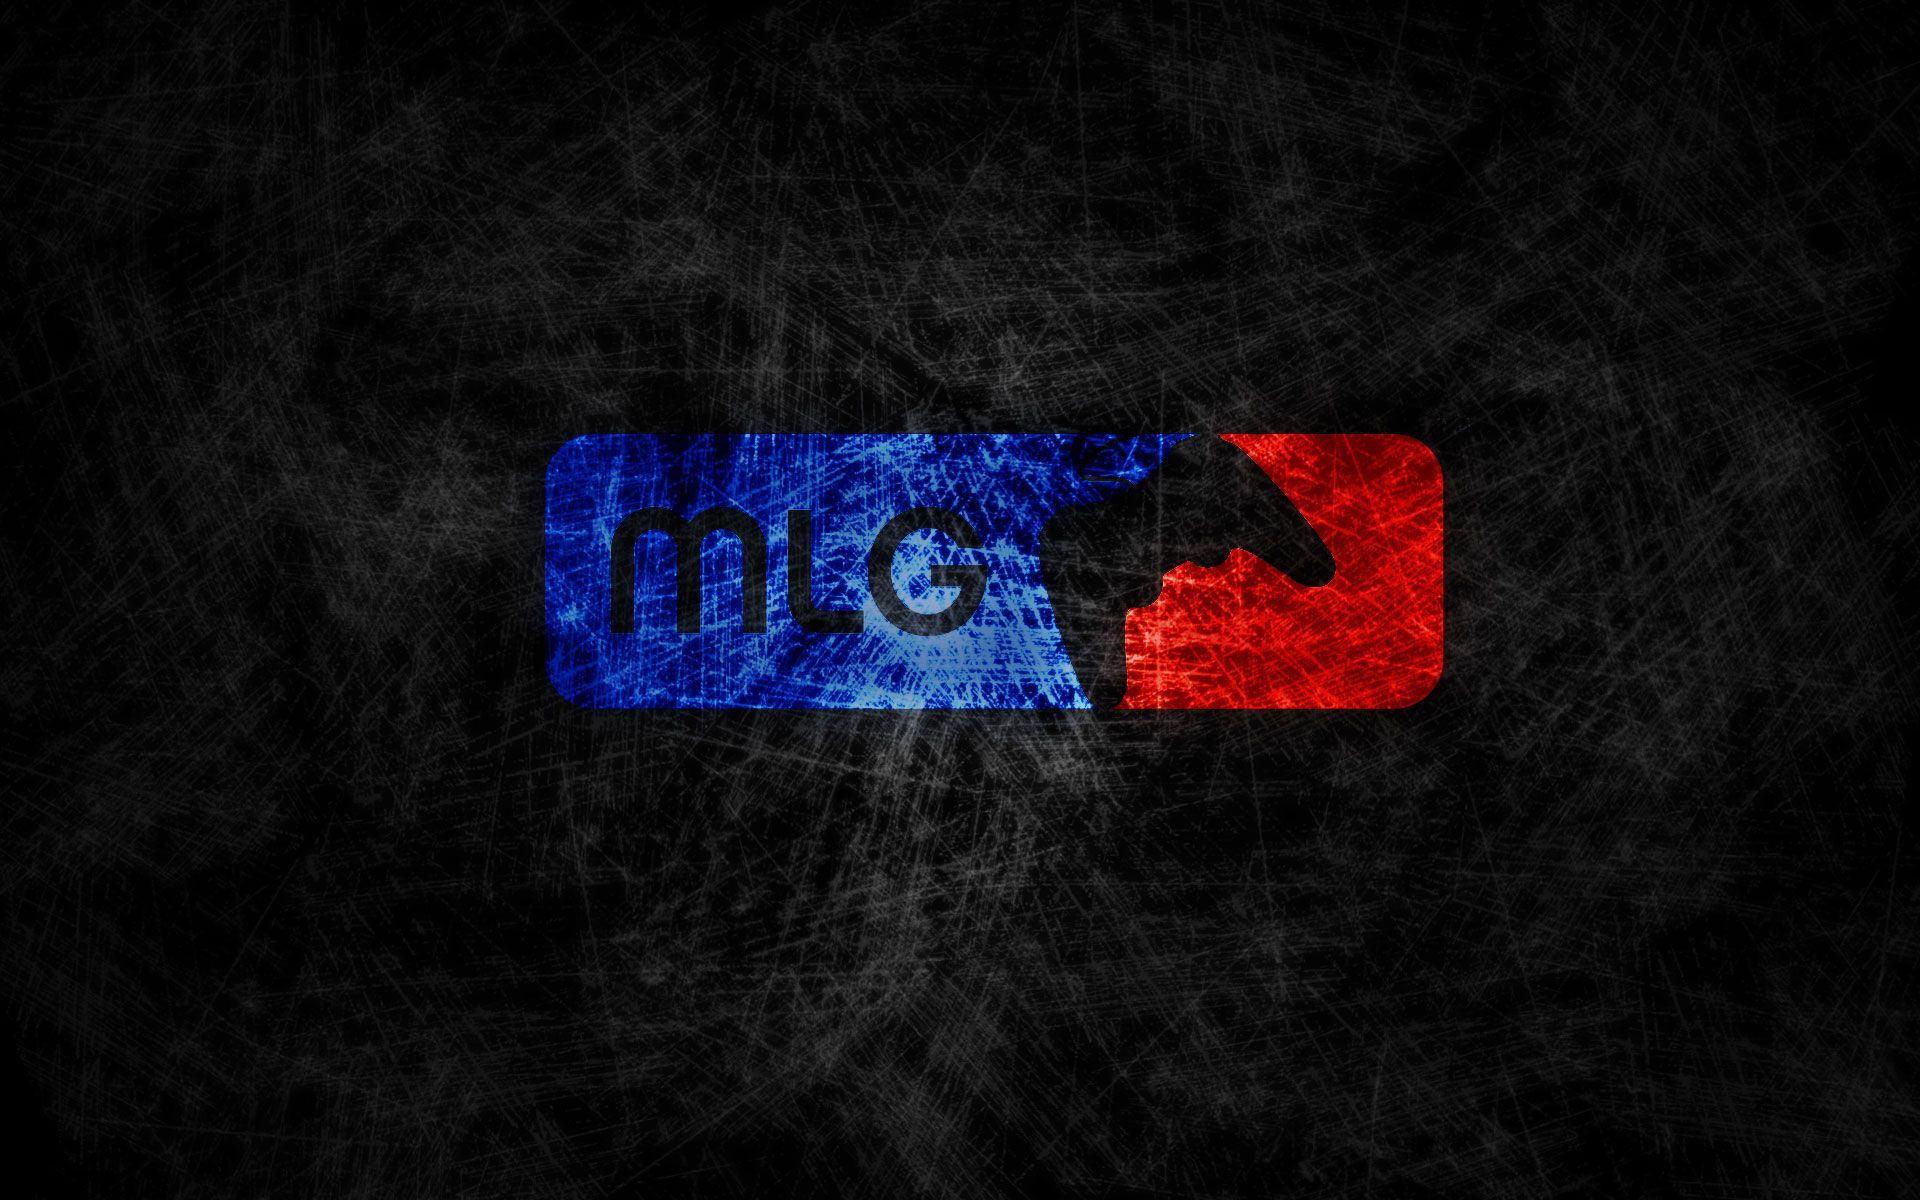 Wallpaper Mlg